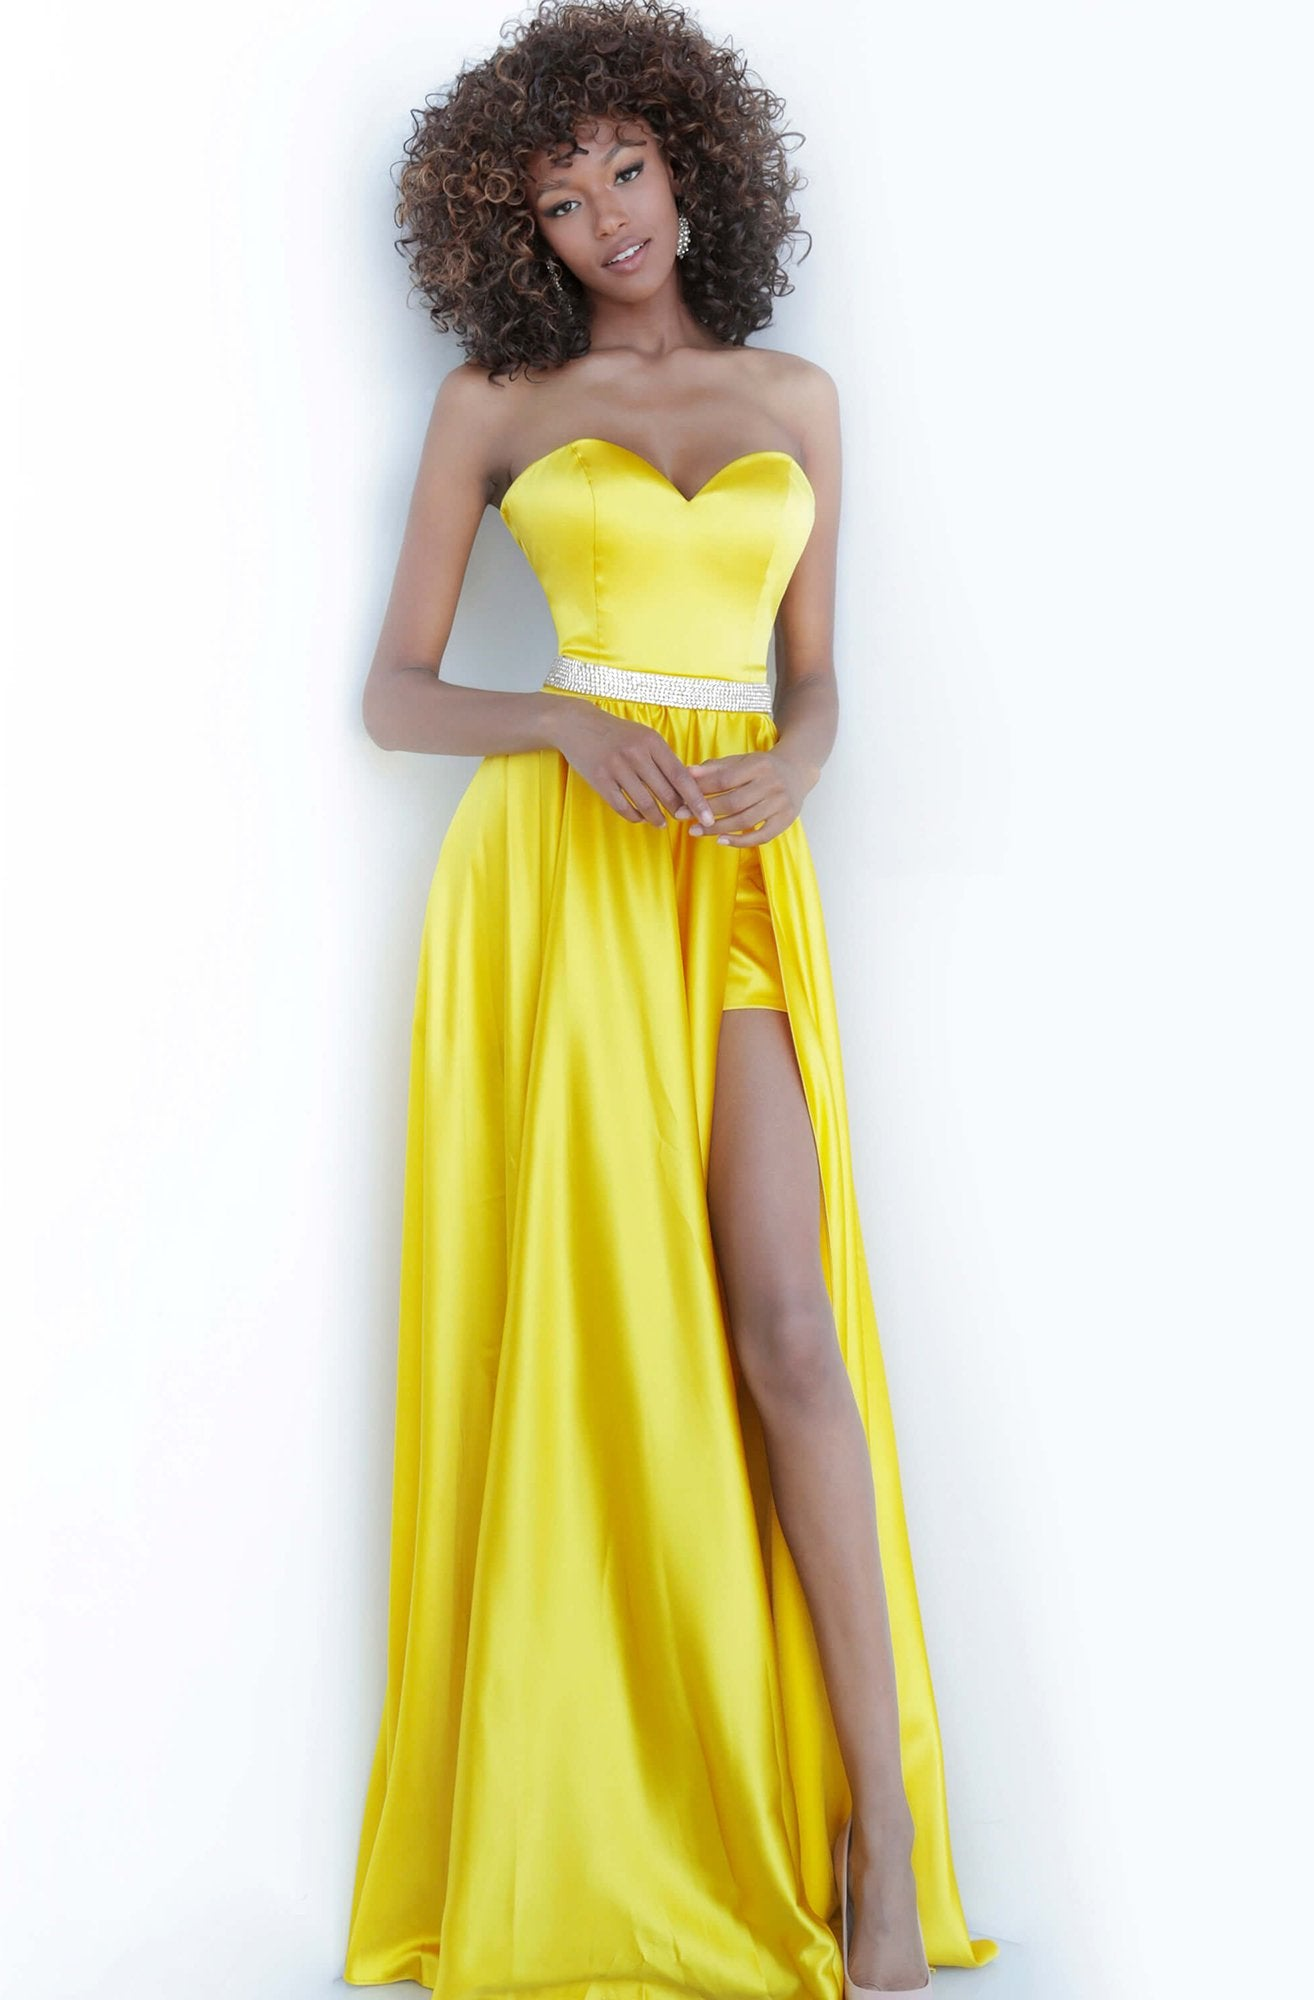 Jovani - 3106 Satin Strapless Sweetheart Neckline High Slit Prom Gown In Yellow